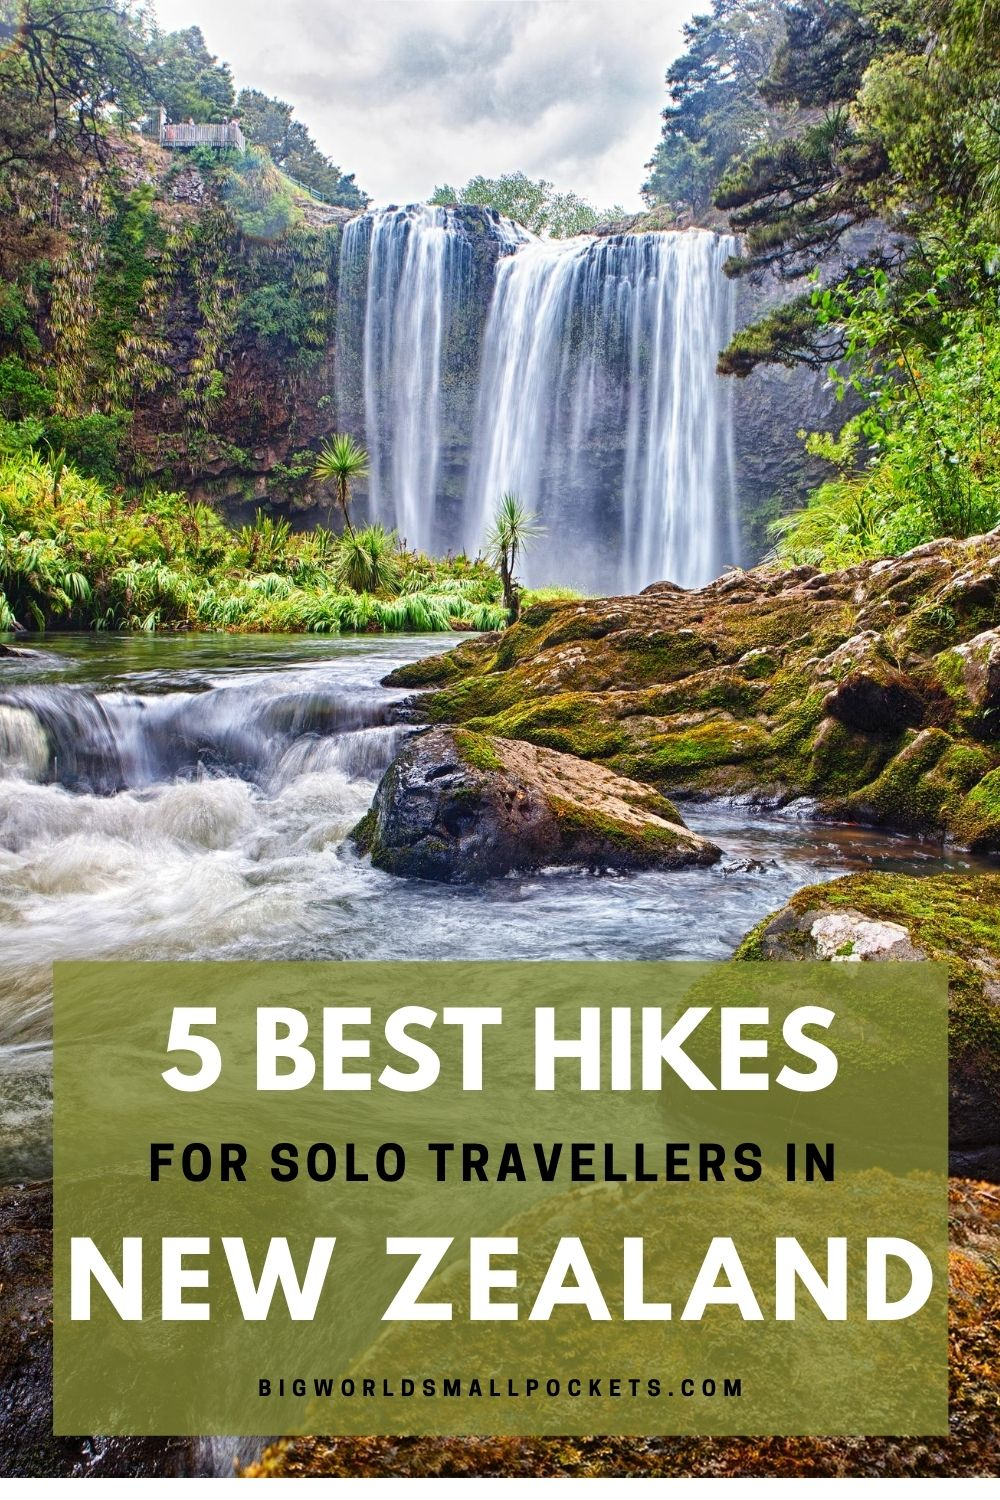 5 Best Hikes for Solo Travellers in New Zealand